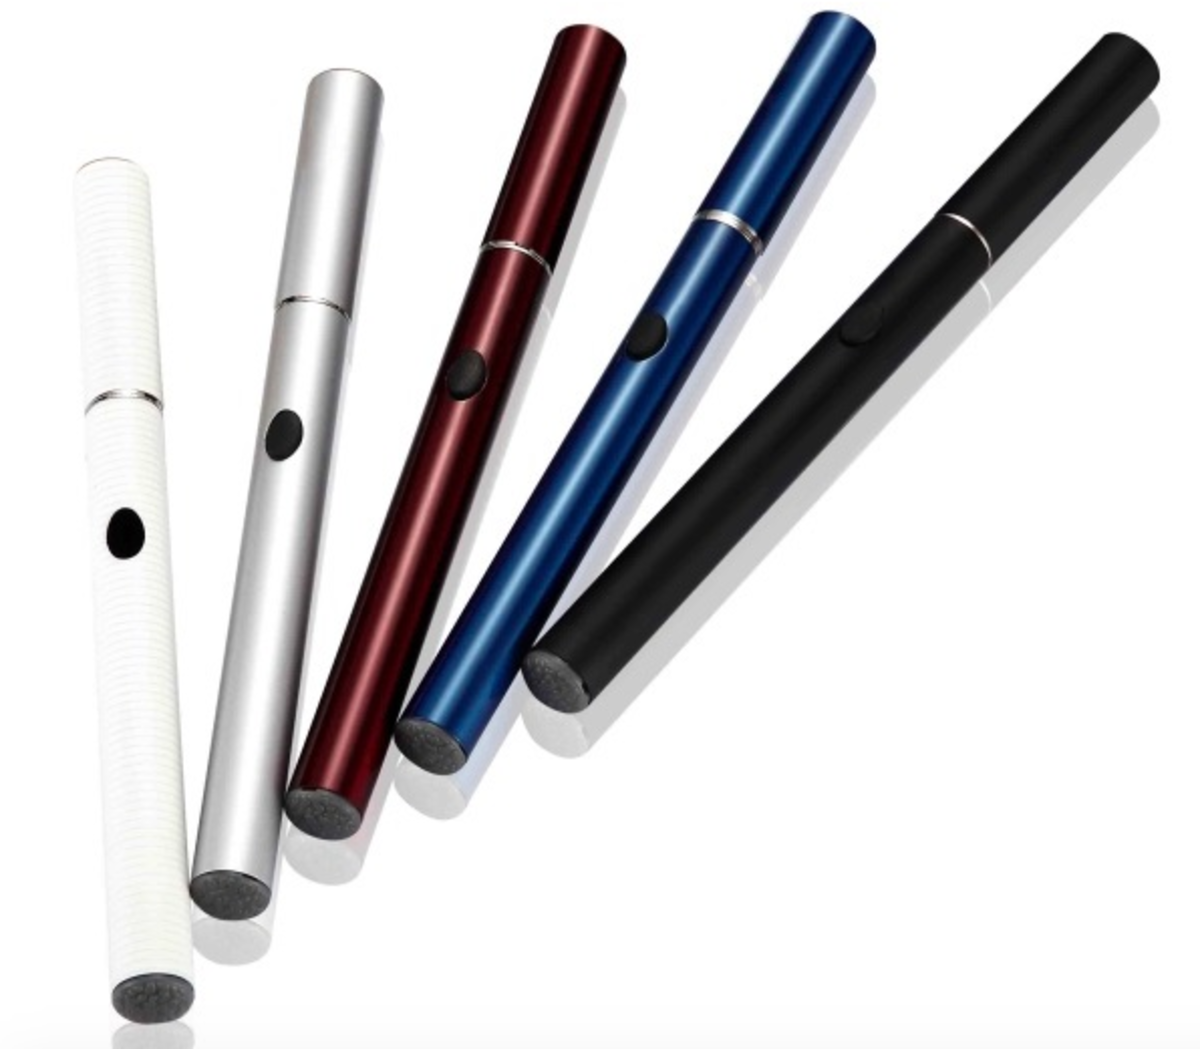 E-Cigarette Use By Teens Skyrockets In One Year, Says Study - Opposing Views